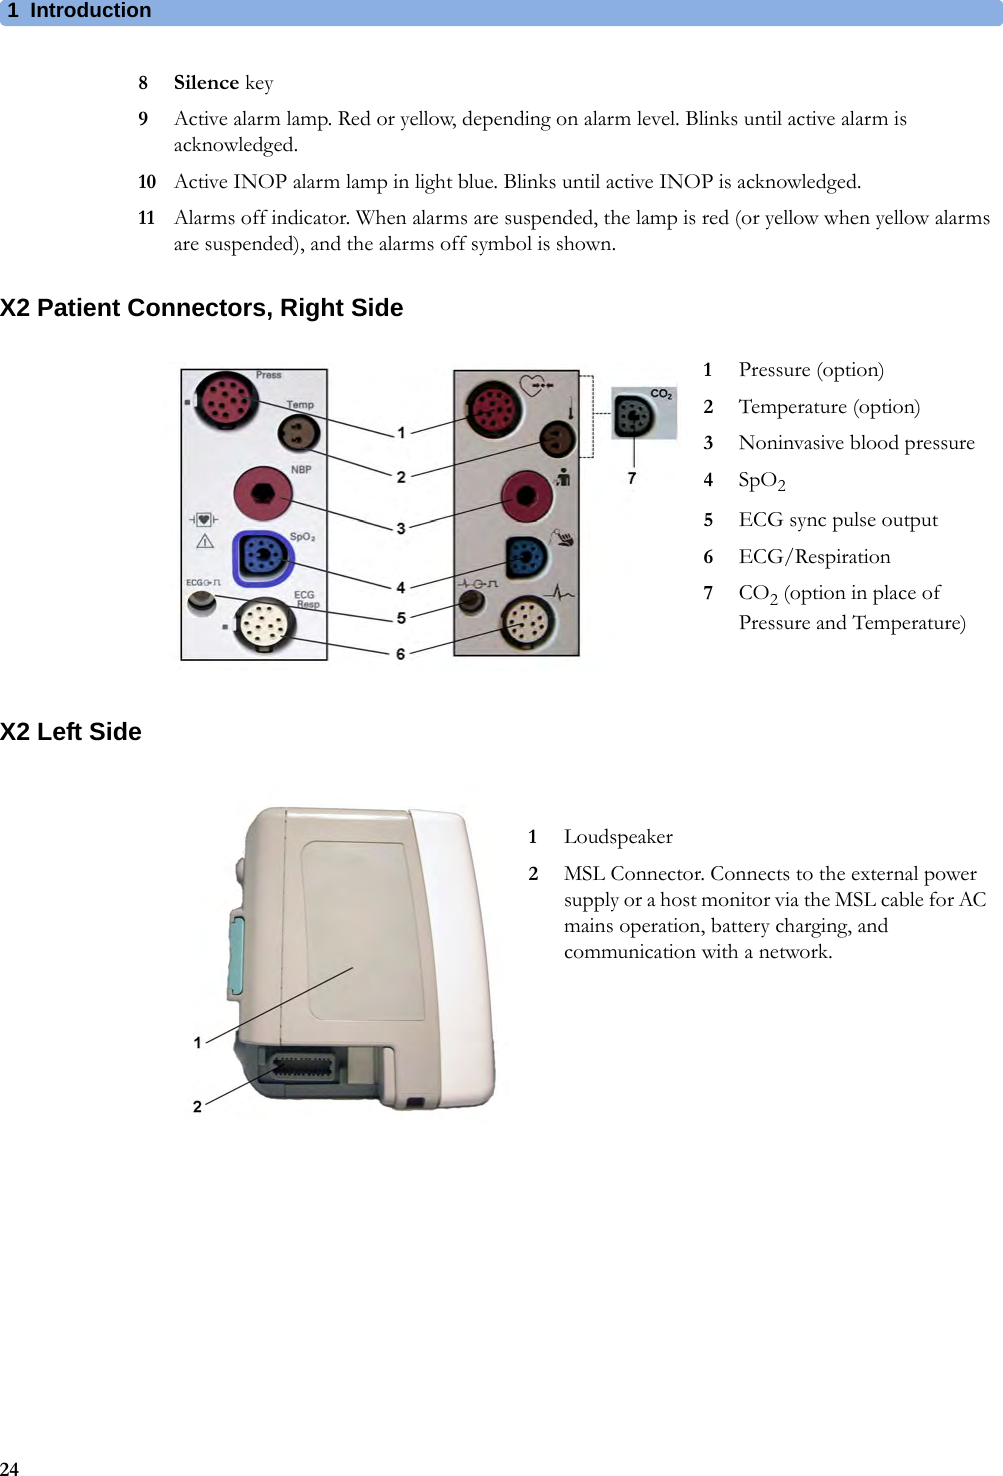 Philips Medical Systems North America SRRBV3 SRR Module User